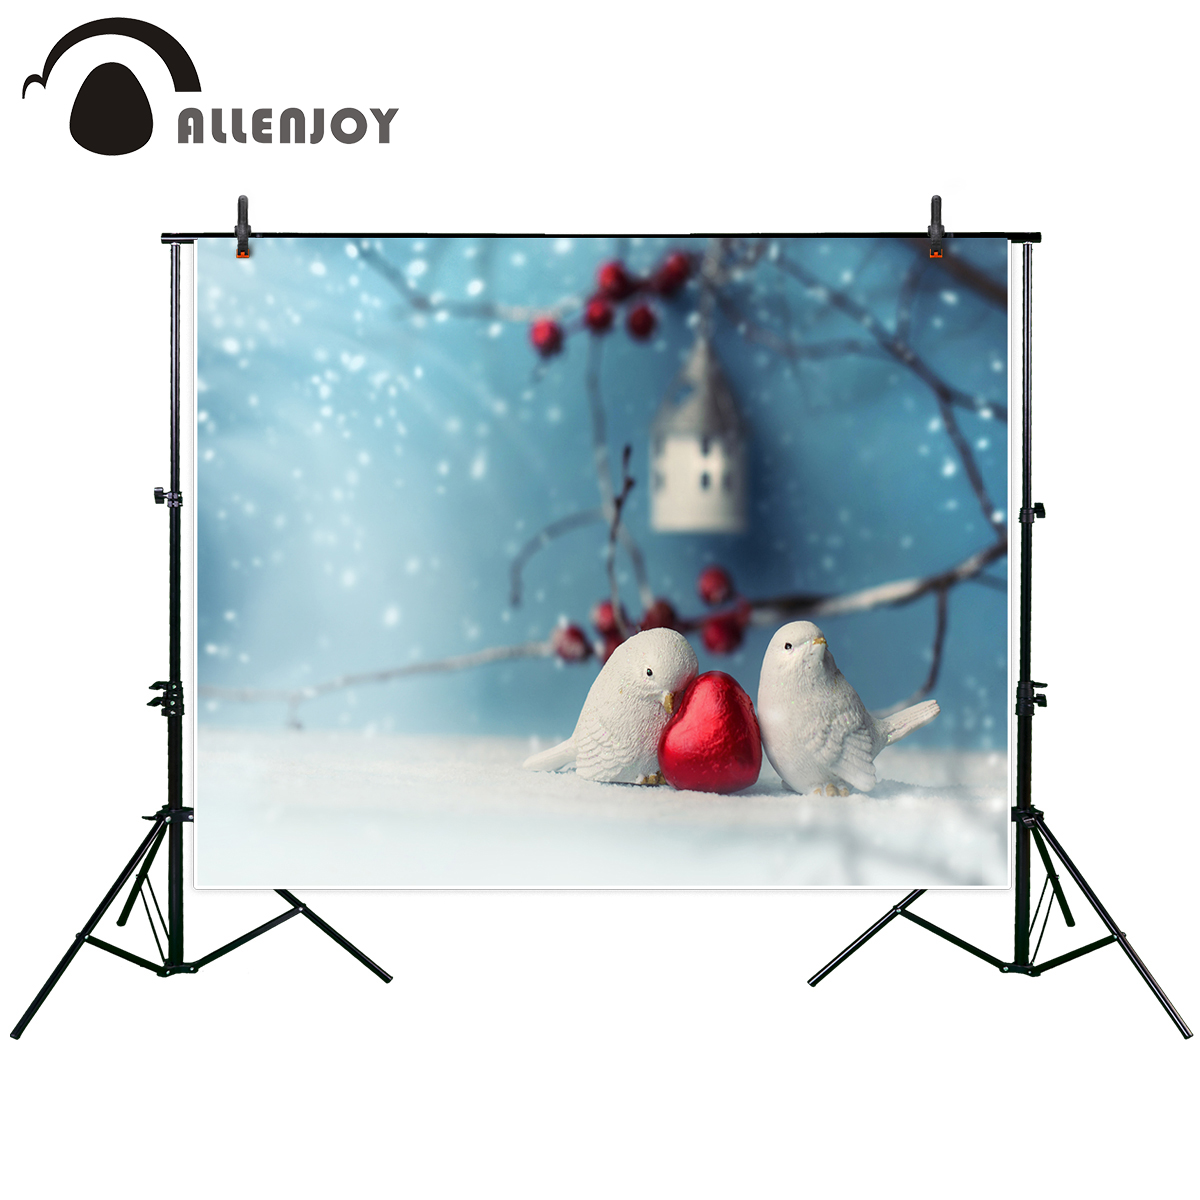 Allenjoy new photography background Two cute ceramic birds in love at winter time Valentine Day photo studio photobooth HD file 8x10ft valentine s day photography pink love heart shape adult portrait backdrop d 7324